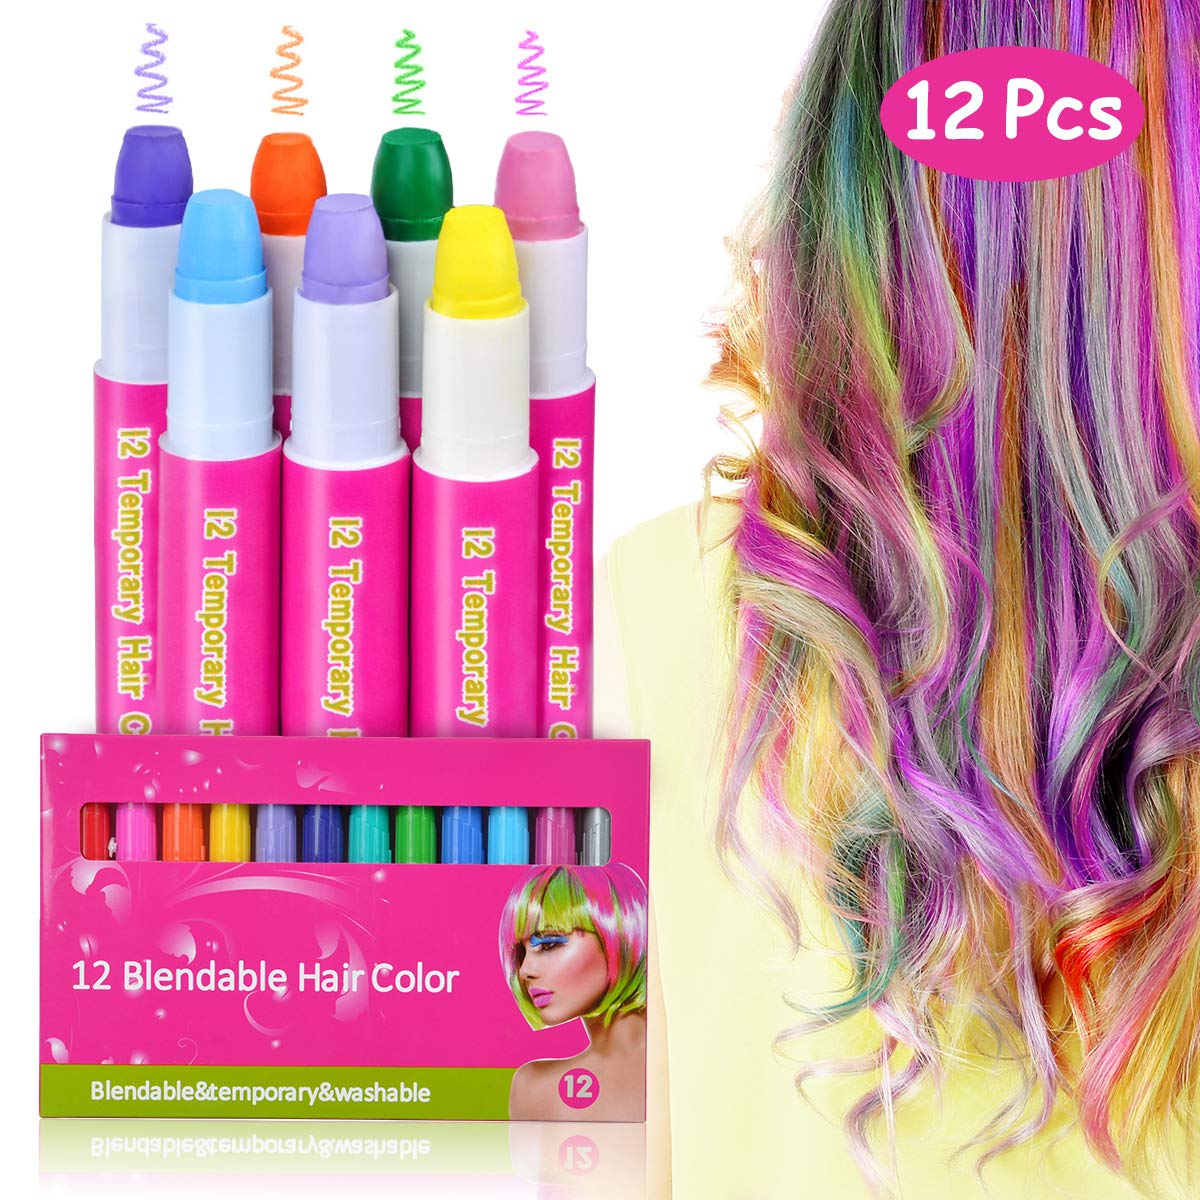 Christmas Gifts For Girls Age 12.Hair Chalks 12 Pack Girls Gifts Temporary Hair Chalk Pens Washes Out Easily With No Mess Best Birthday Christmas Gifts For Girls Boys 85